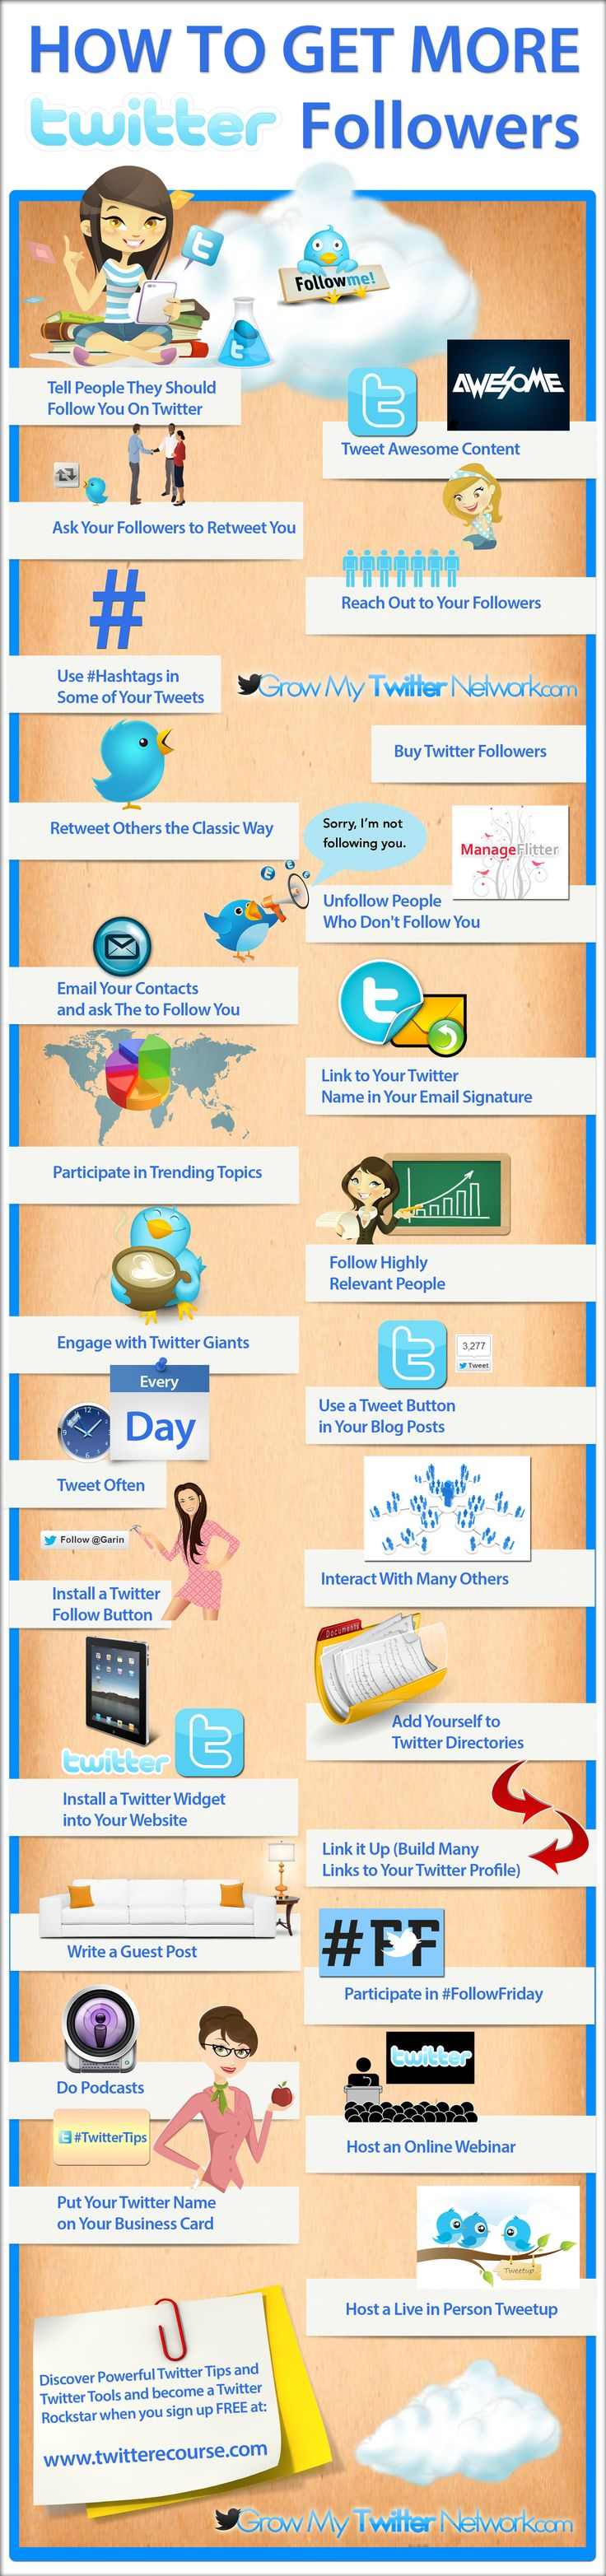 How-To-Get-More-Twitter-Followers | That's if you want them, that is! But wouldn't buy them as #6 suggests.